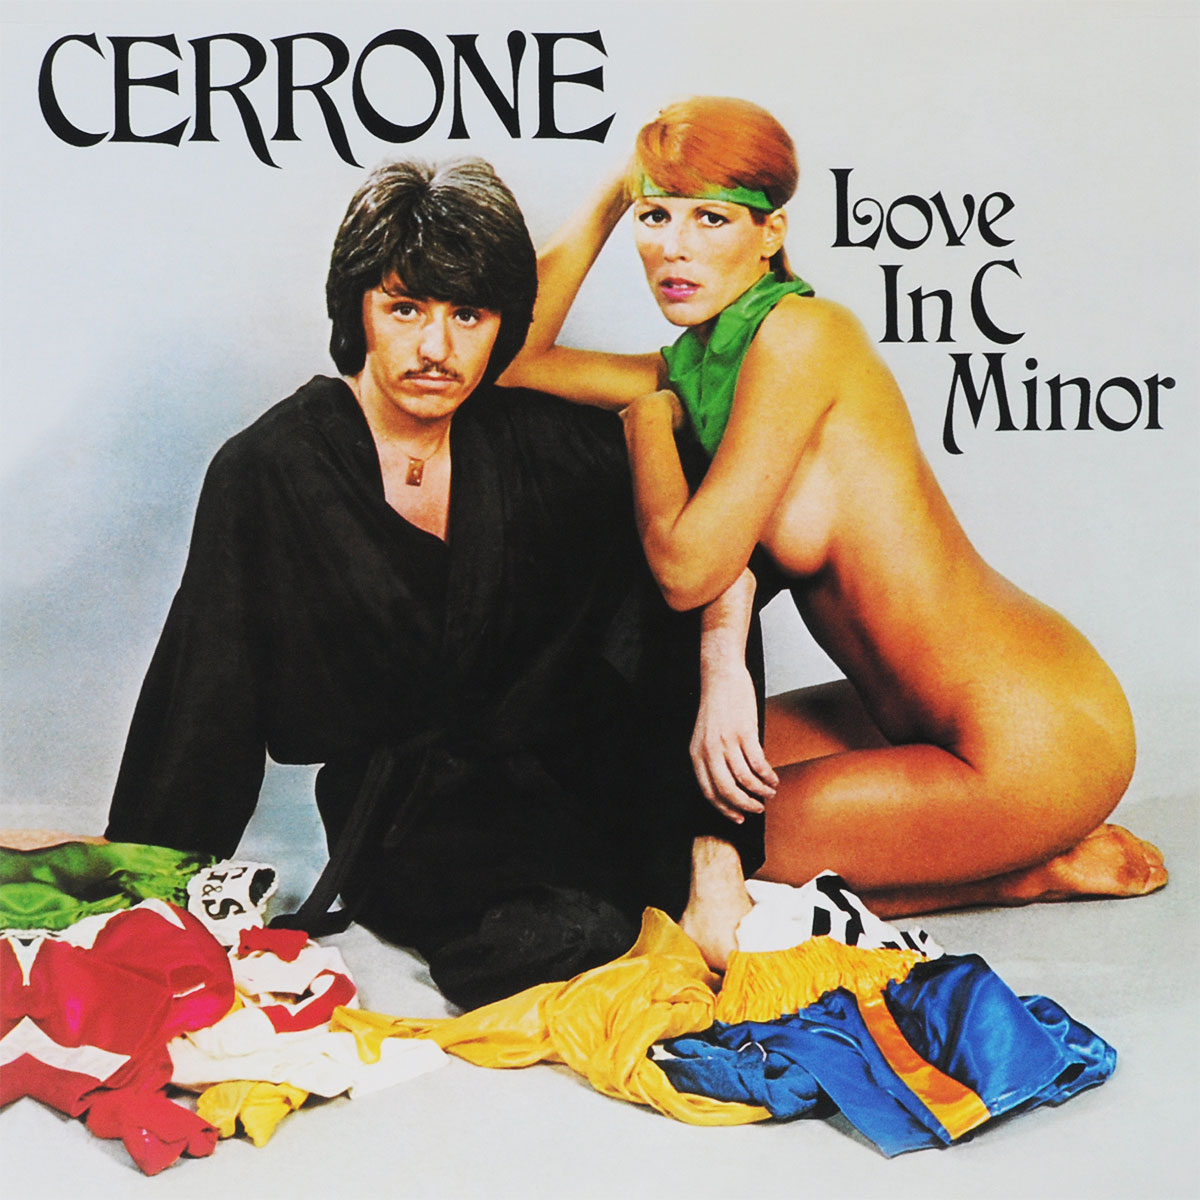 Cerrone Cerrone. Love In C Minor (LP)